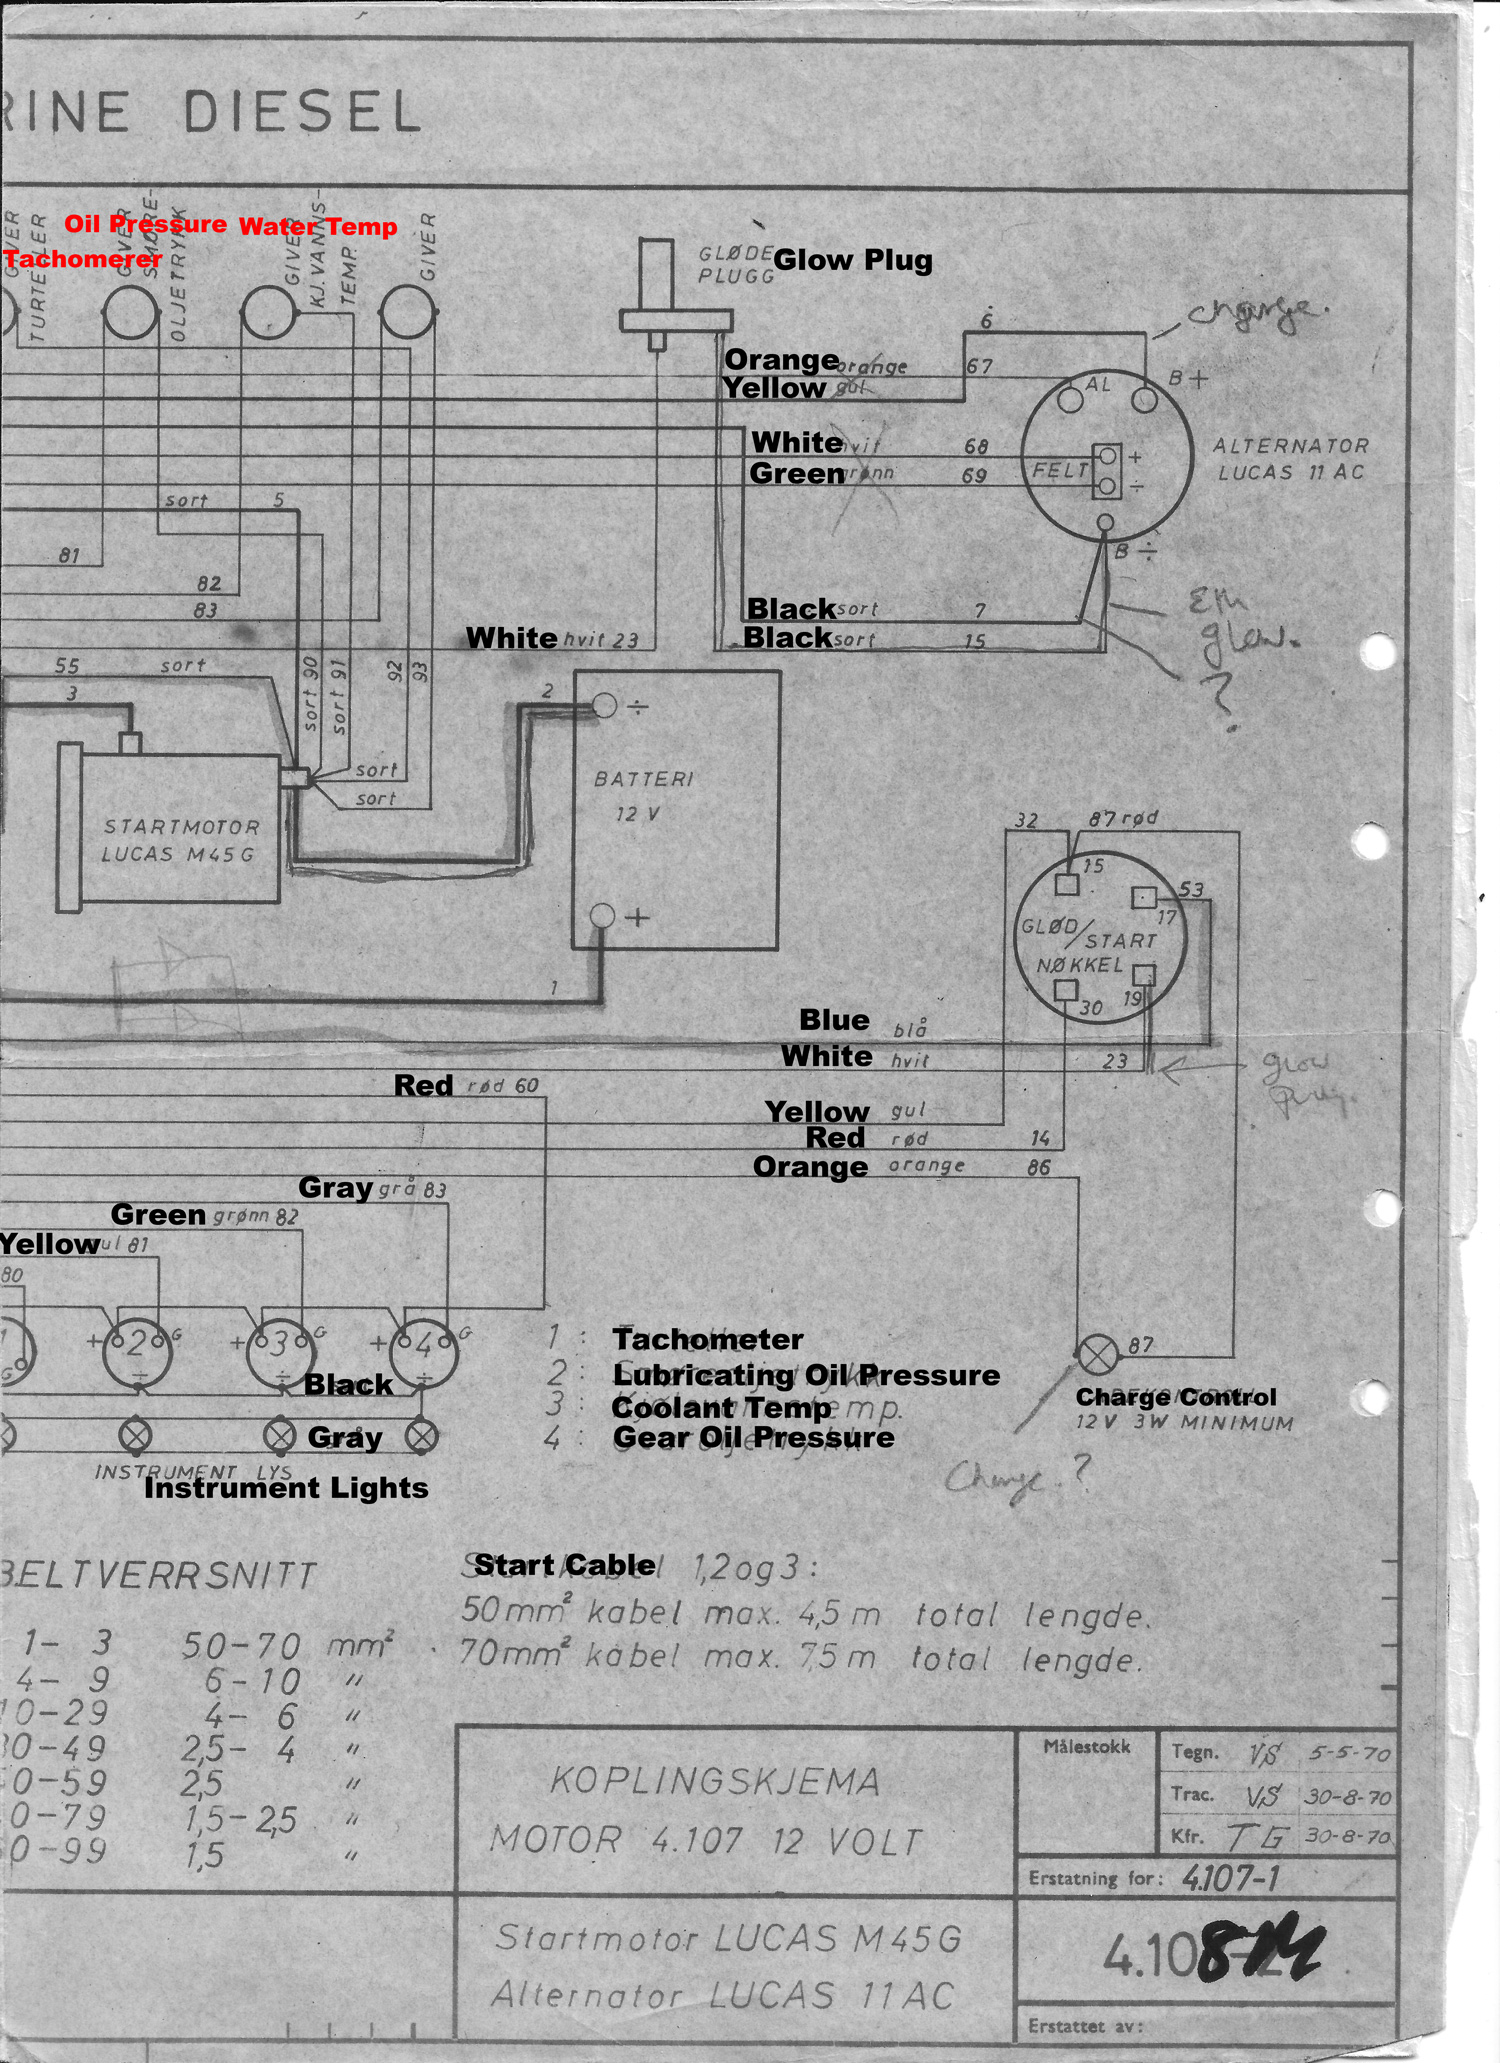 Perkins Alternator Wiring Diagram : 33 Wiring Diagram